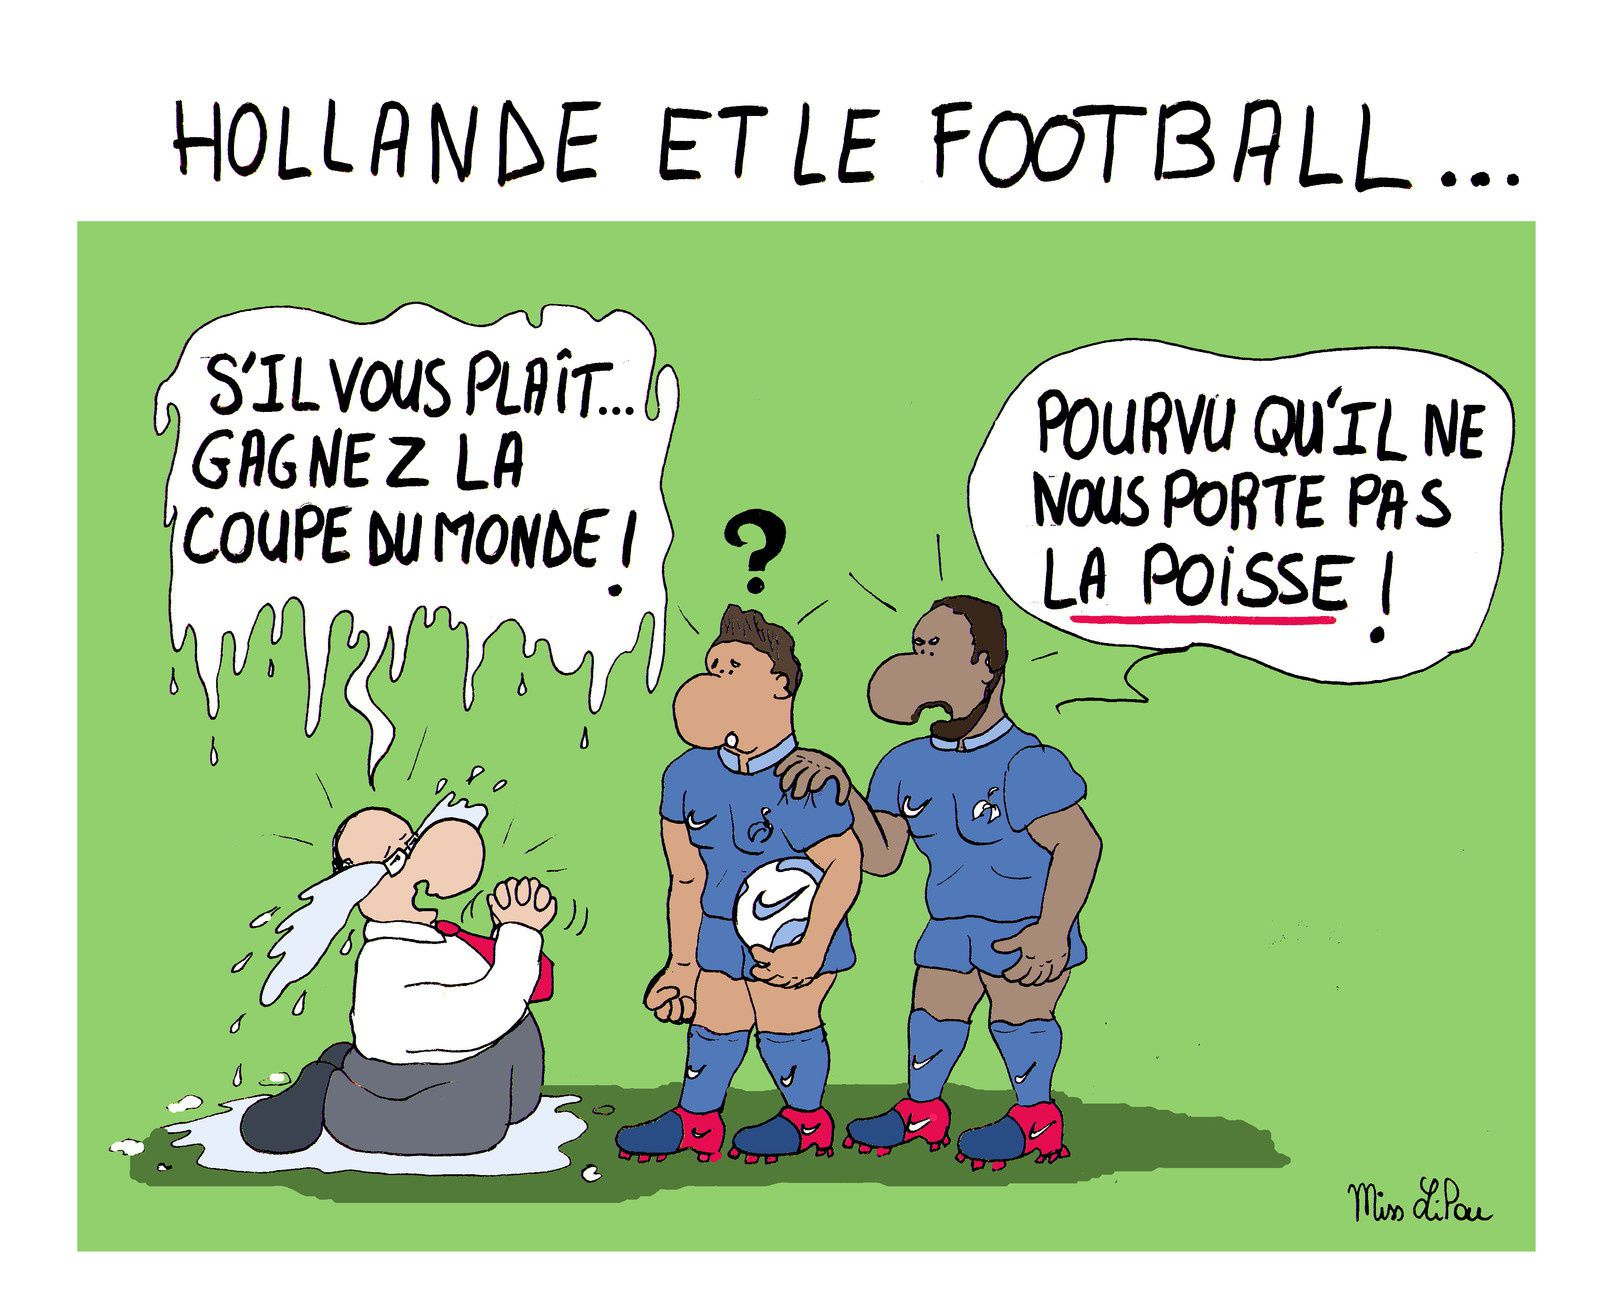 François Hollande et le Football...